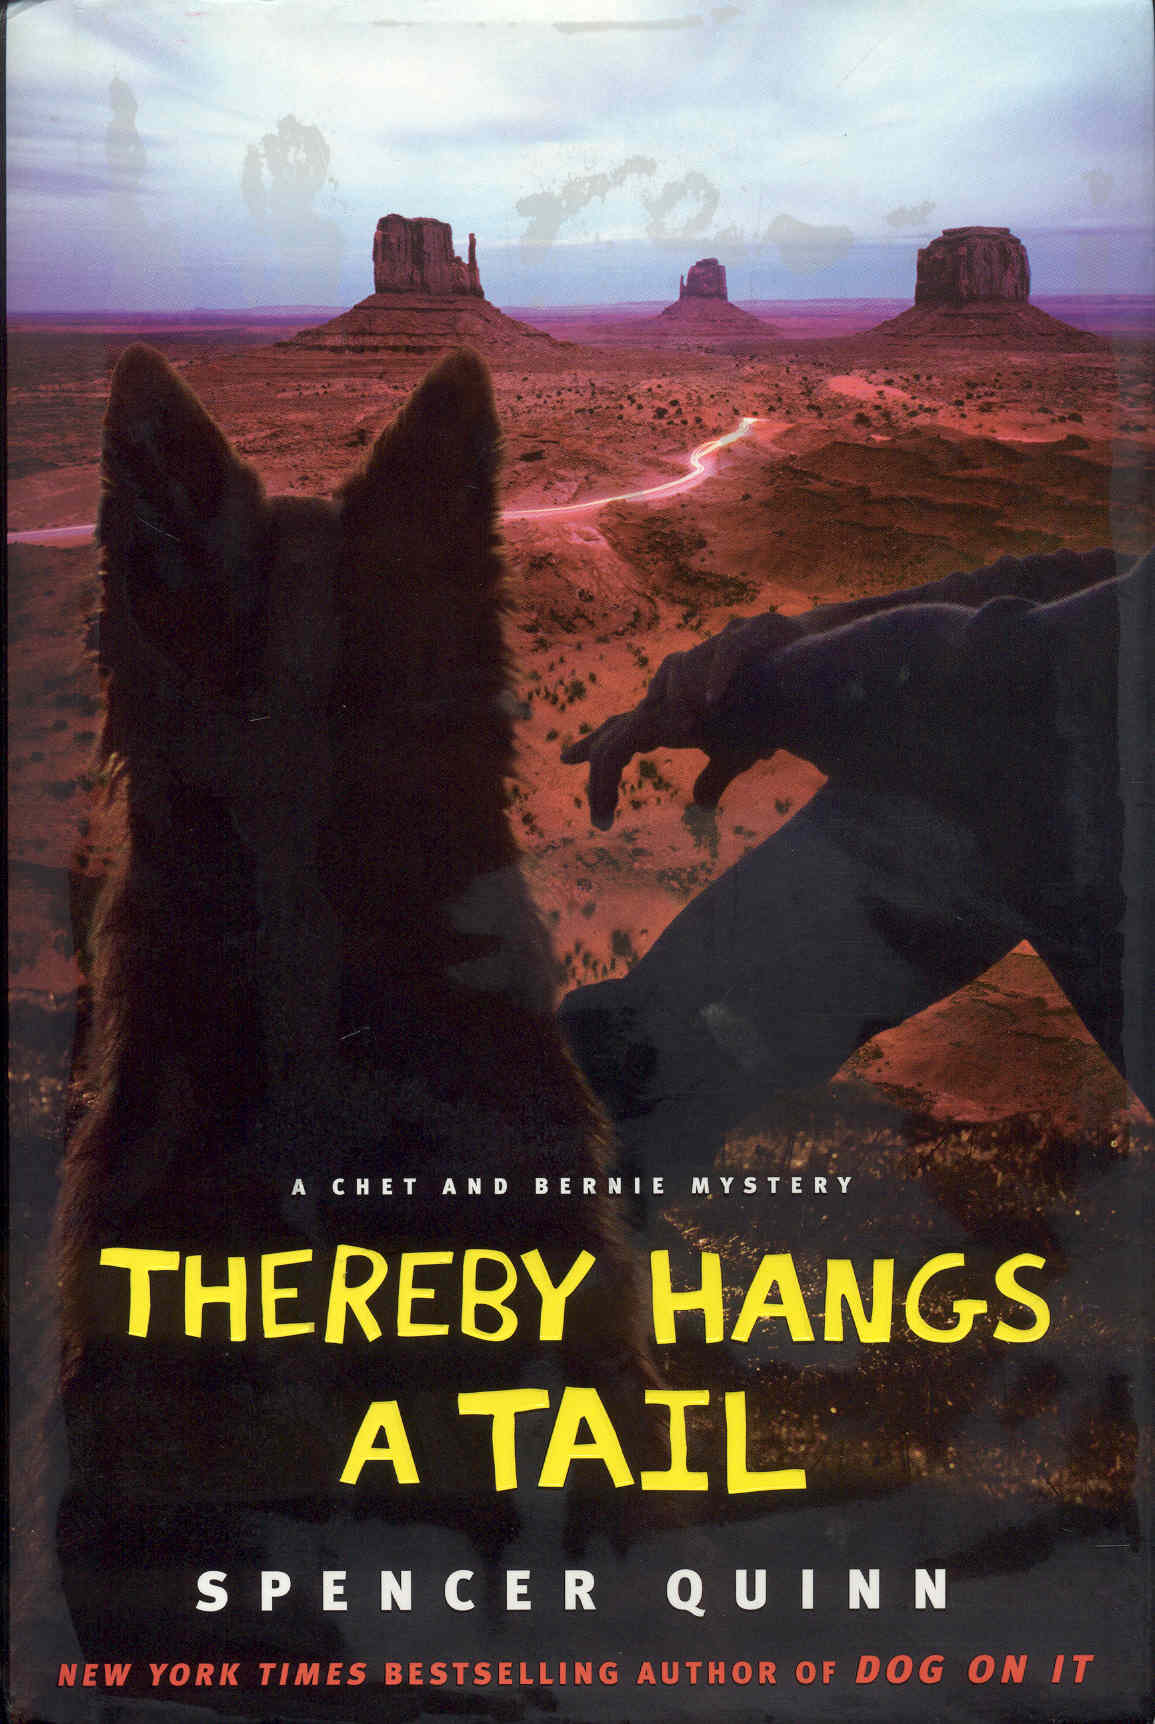 Image for Thereby Hangs a Tail (Signed)